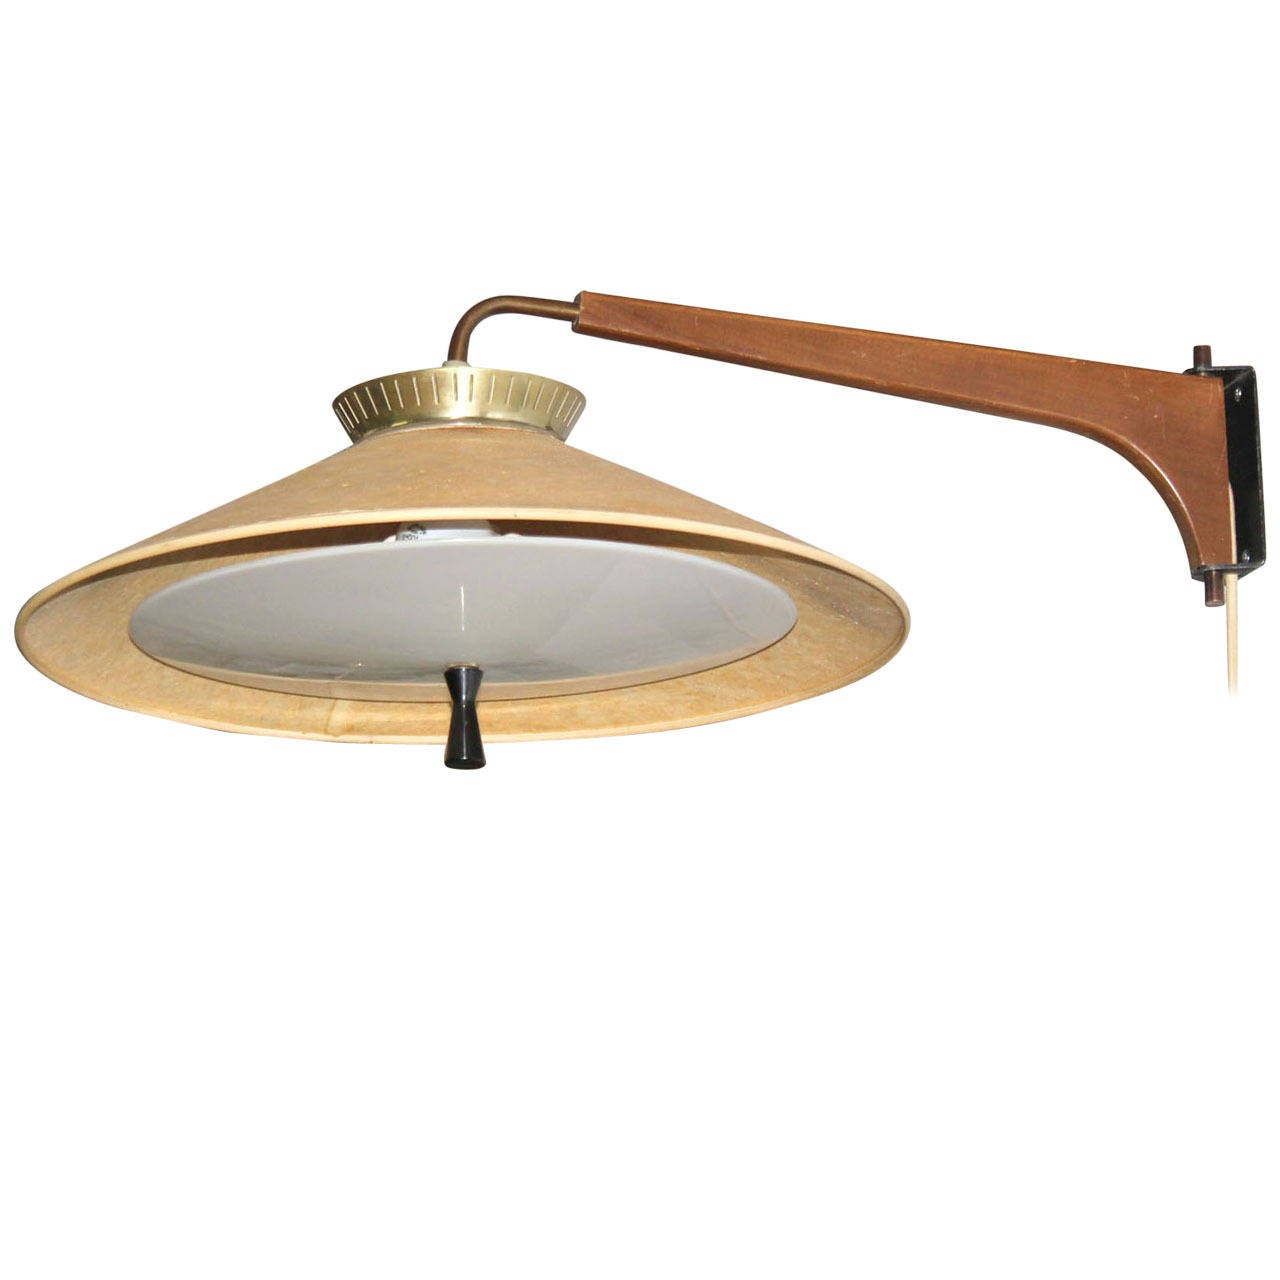 Adjustable Vanity Light Fixtures : Mid-Century Danish Modern Fully Adjustable Sconce Light Fixture at 1stdibs